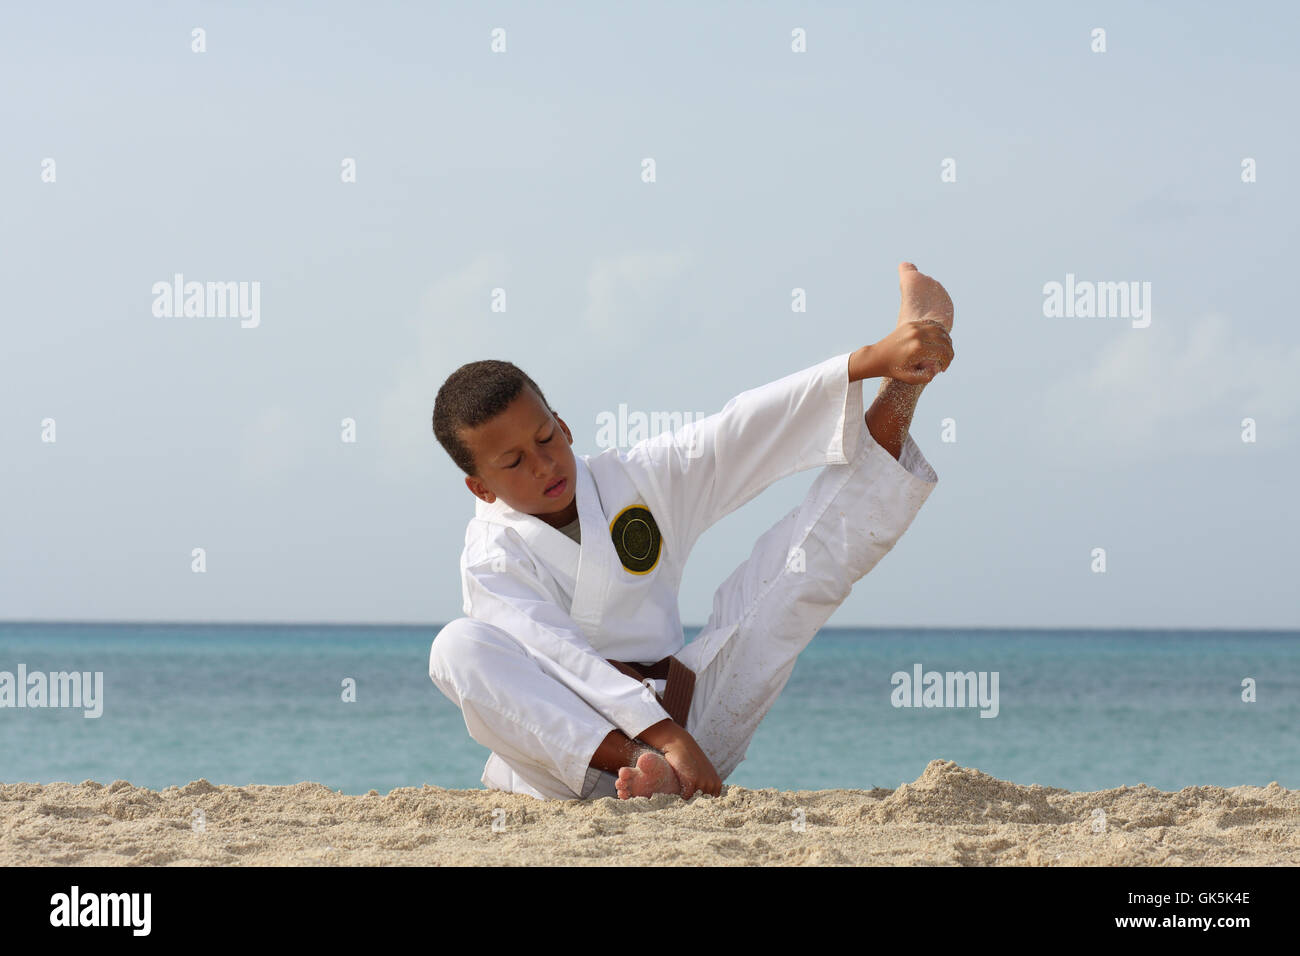 11-years boy doing warming-up before Tae Kwon Do work-out on the Caribbean island beach. - Stock Image